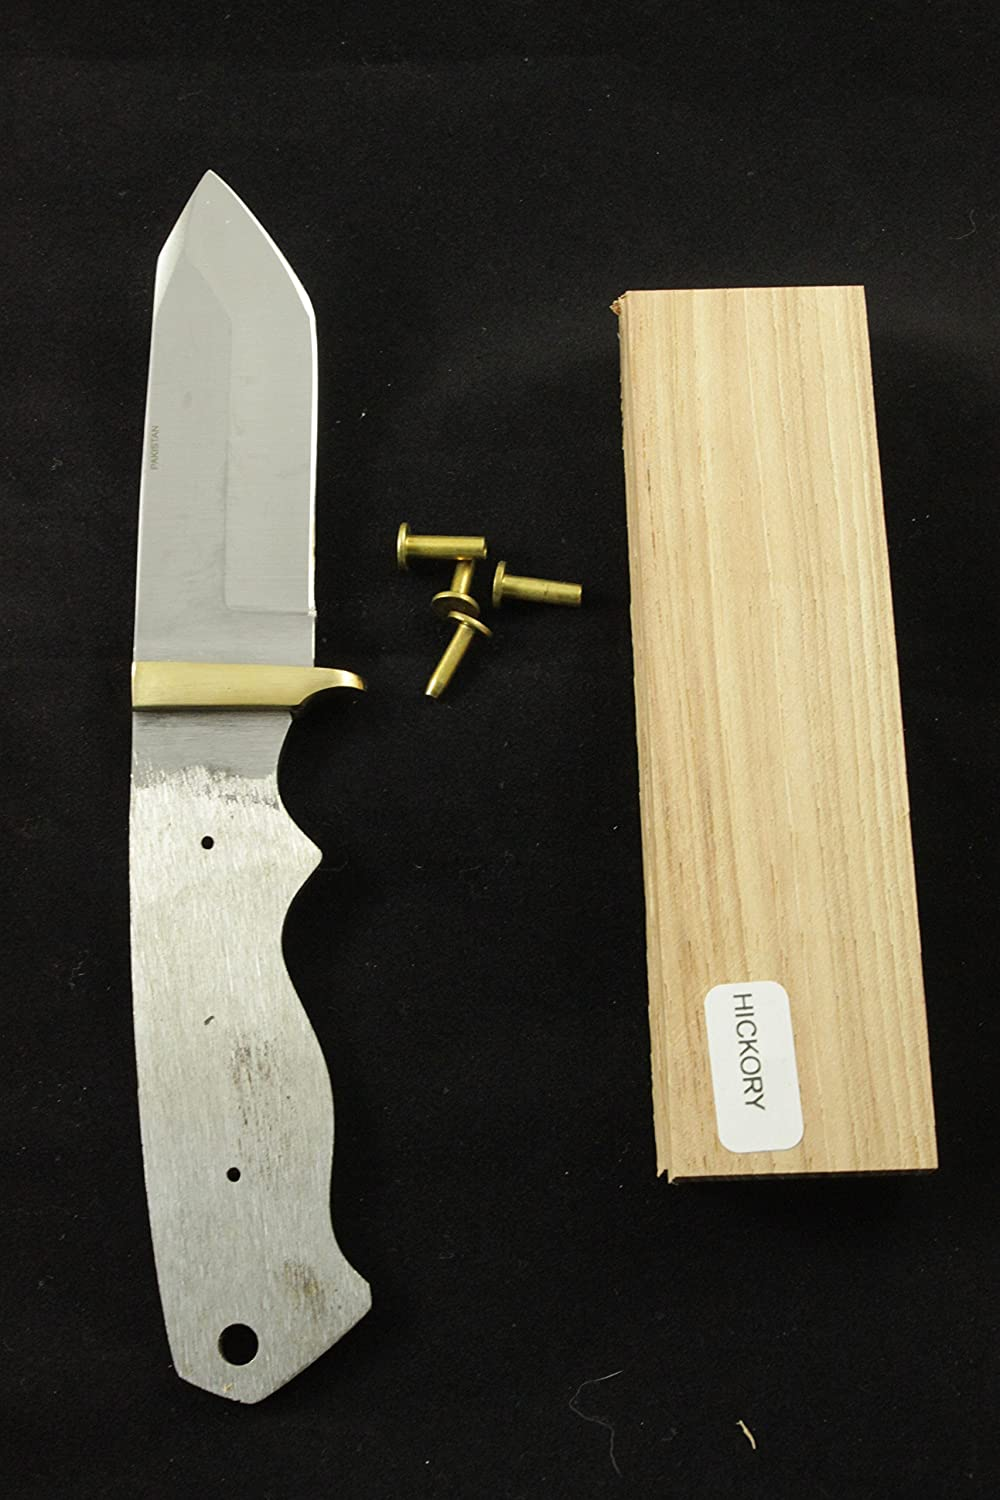 Payne Bros Custom Knives 7.75 INCH TANTO knife kit DIY KNIFE KIT PAYNE BROS